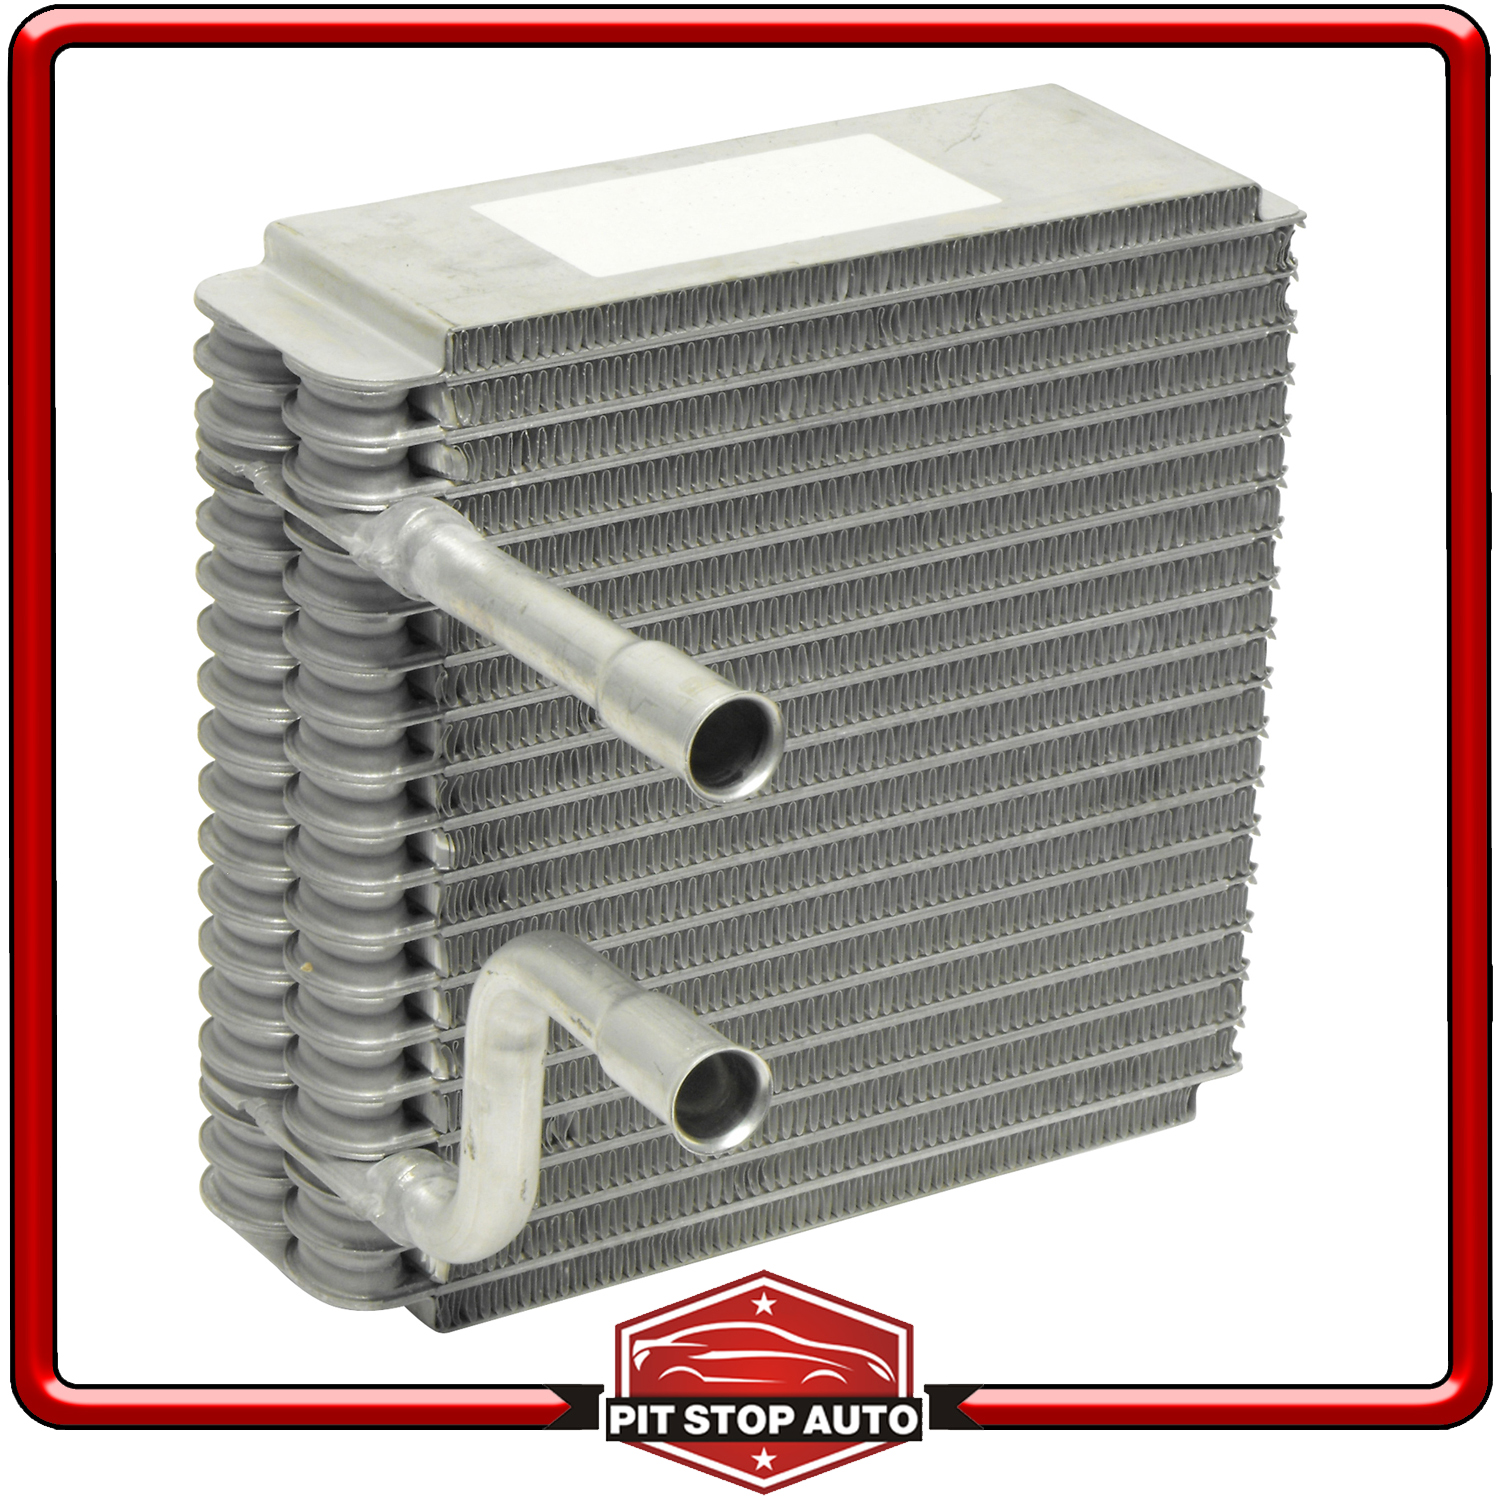 New A/C Evaporator Core EV 4798730PFXC - 6S4Z19850BB Focus Transit Connect